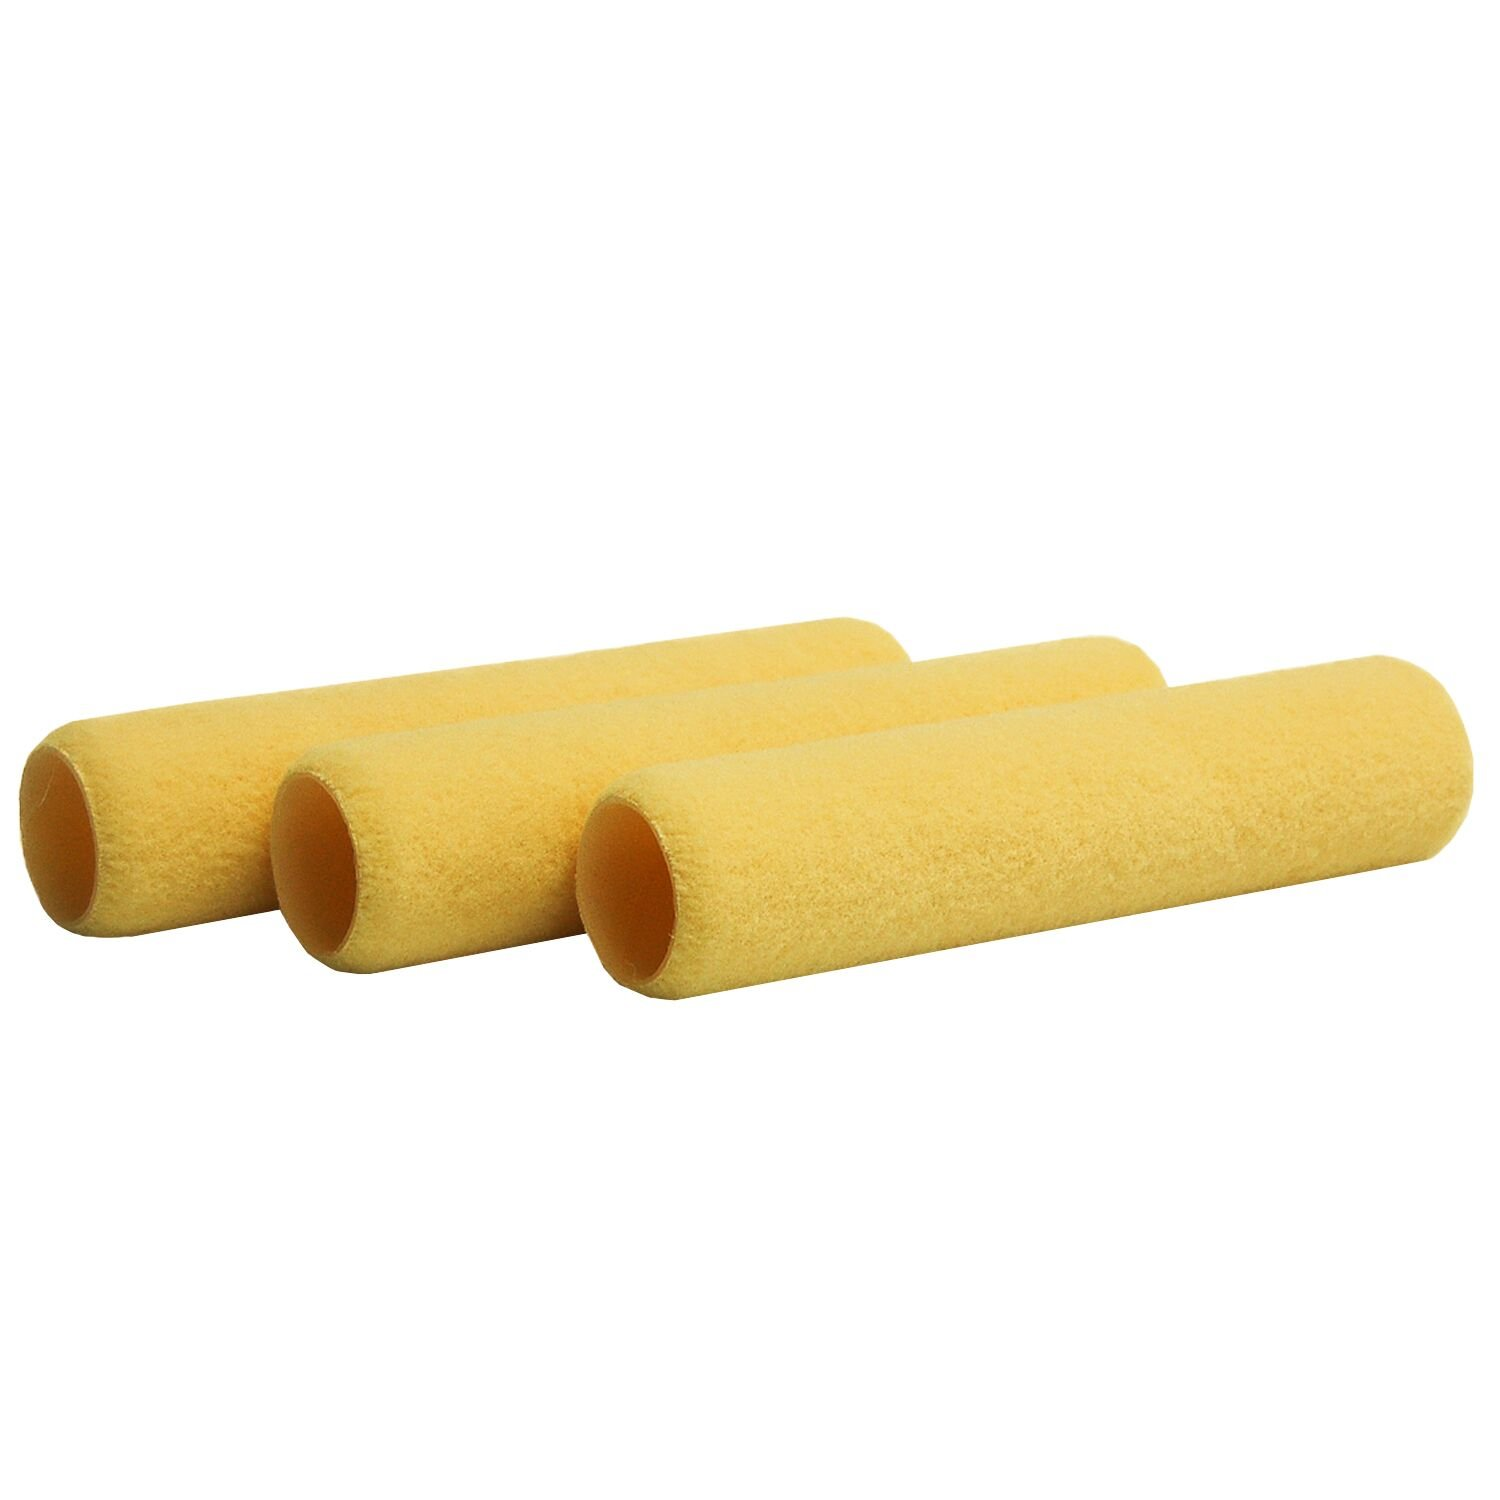 Shur-Line 7899S 9-Inch One Coat Smooth Roller Cover, 3-Pack